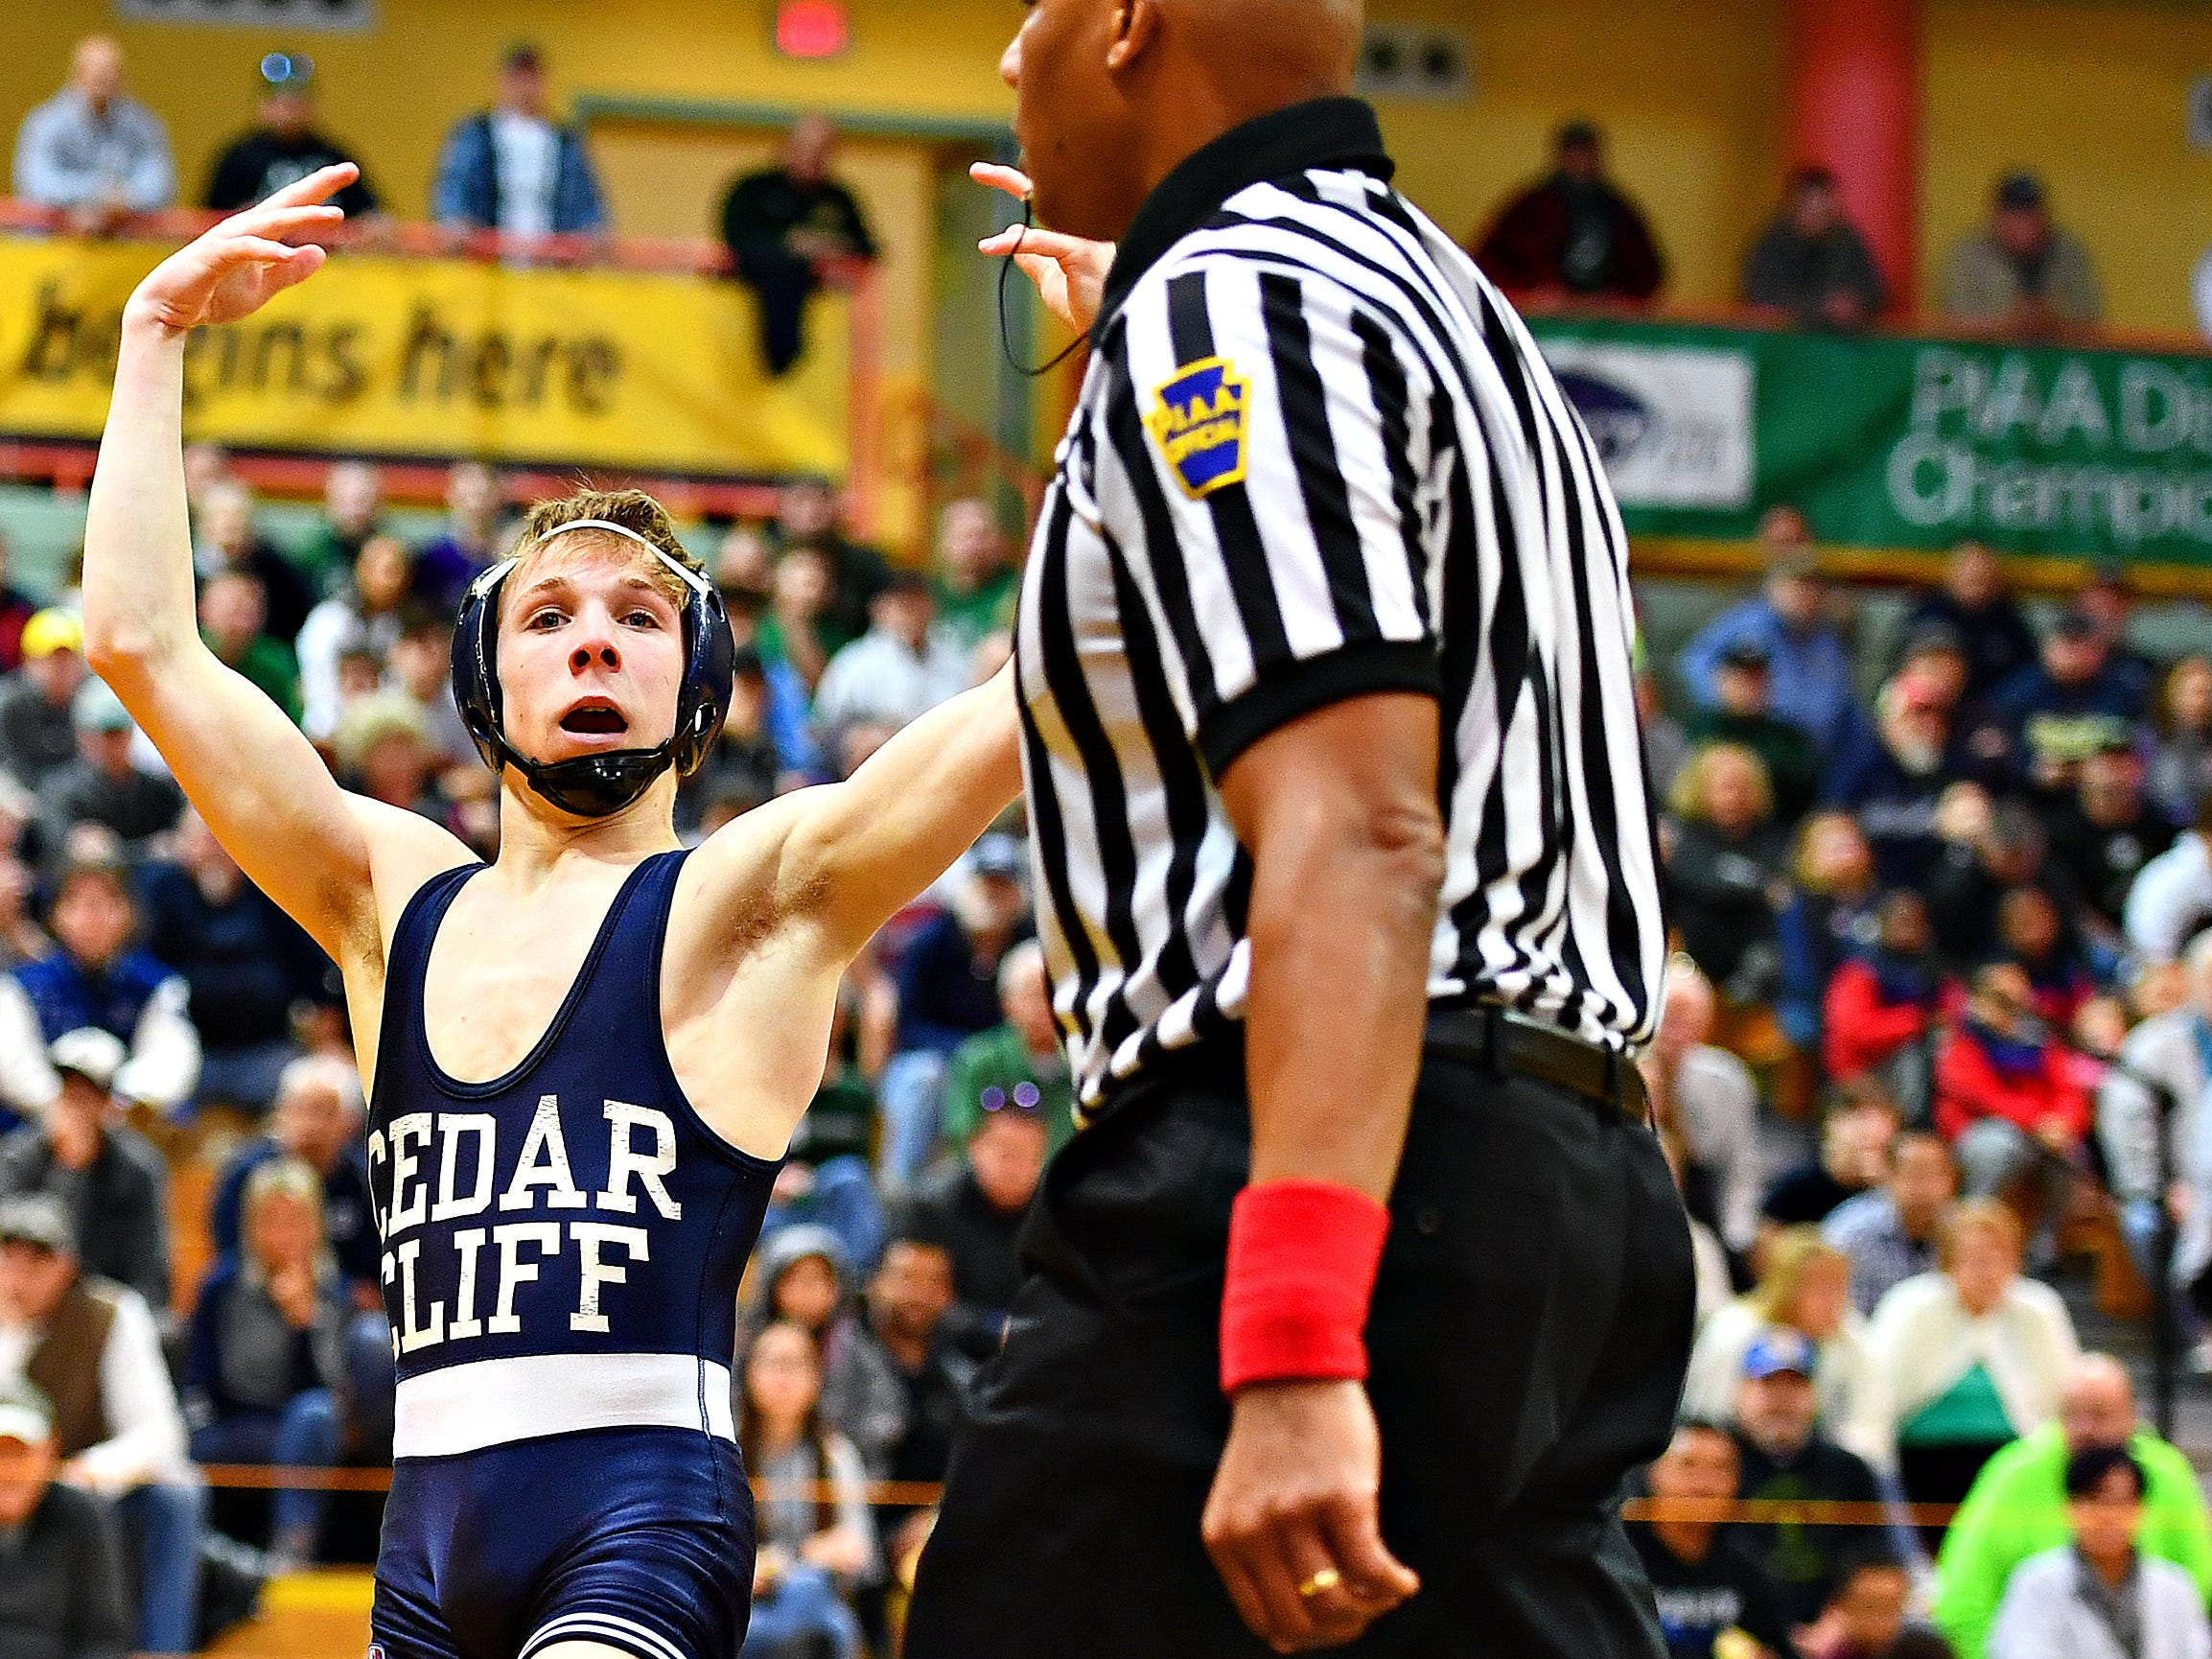 Cedar Cliff's Cole Baer, left, wins over Dallastown's Adam Karlie in the 113 pound weight class during District 3, Class 3A wrestling championship action at Milton Hershey High School in Hershey, Saturday, Feb. 2, 2019. Dawn J. Sagert photo